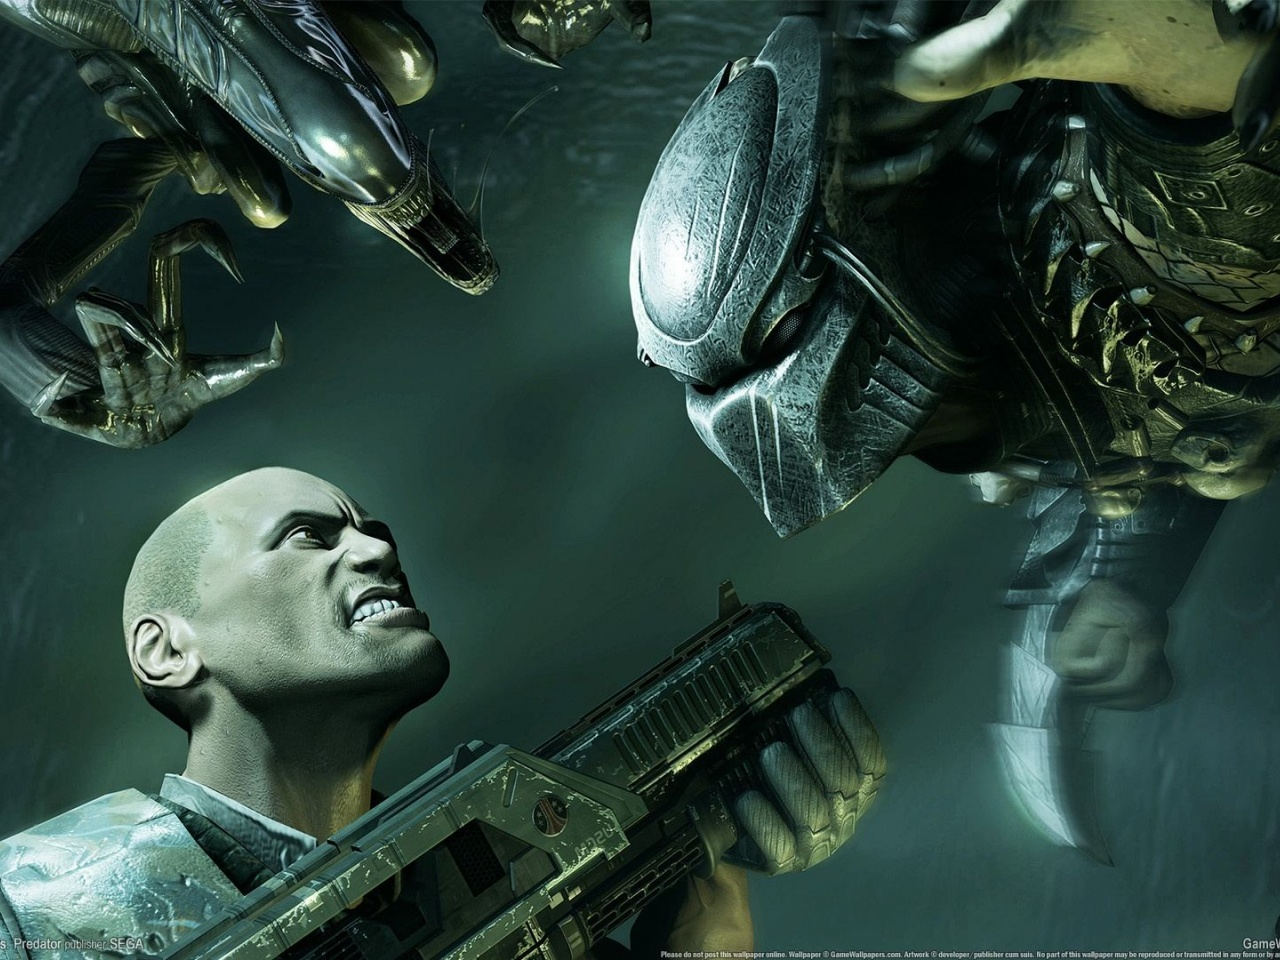 1280x720 Alien Vs Predator, aliens, console, games